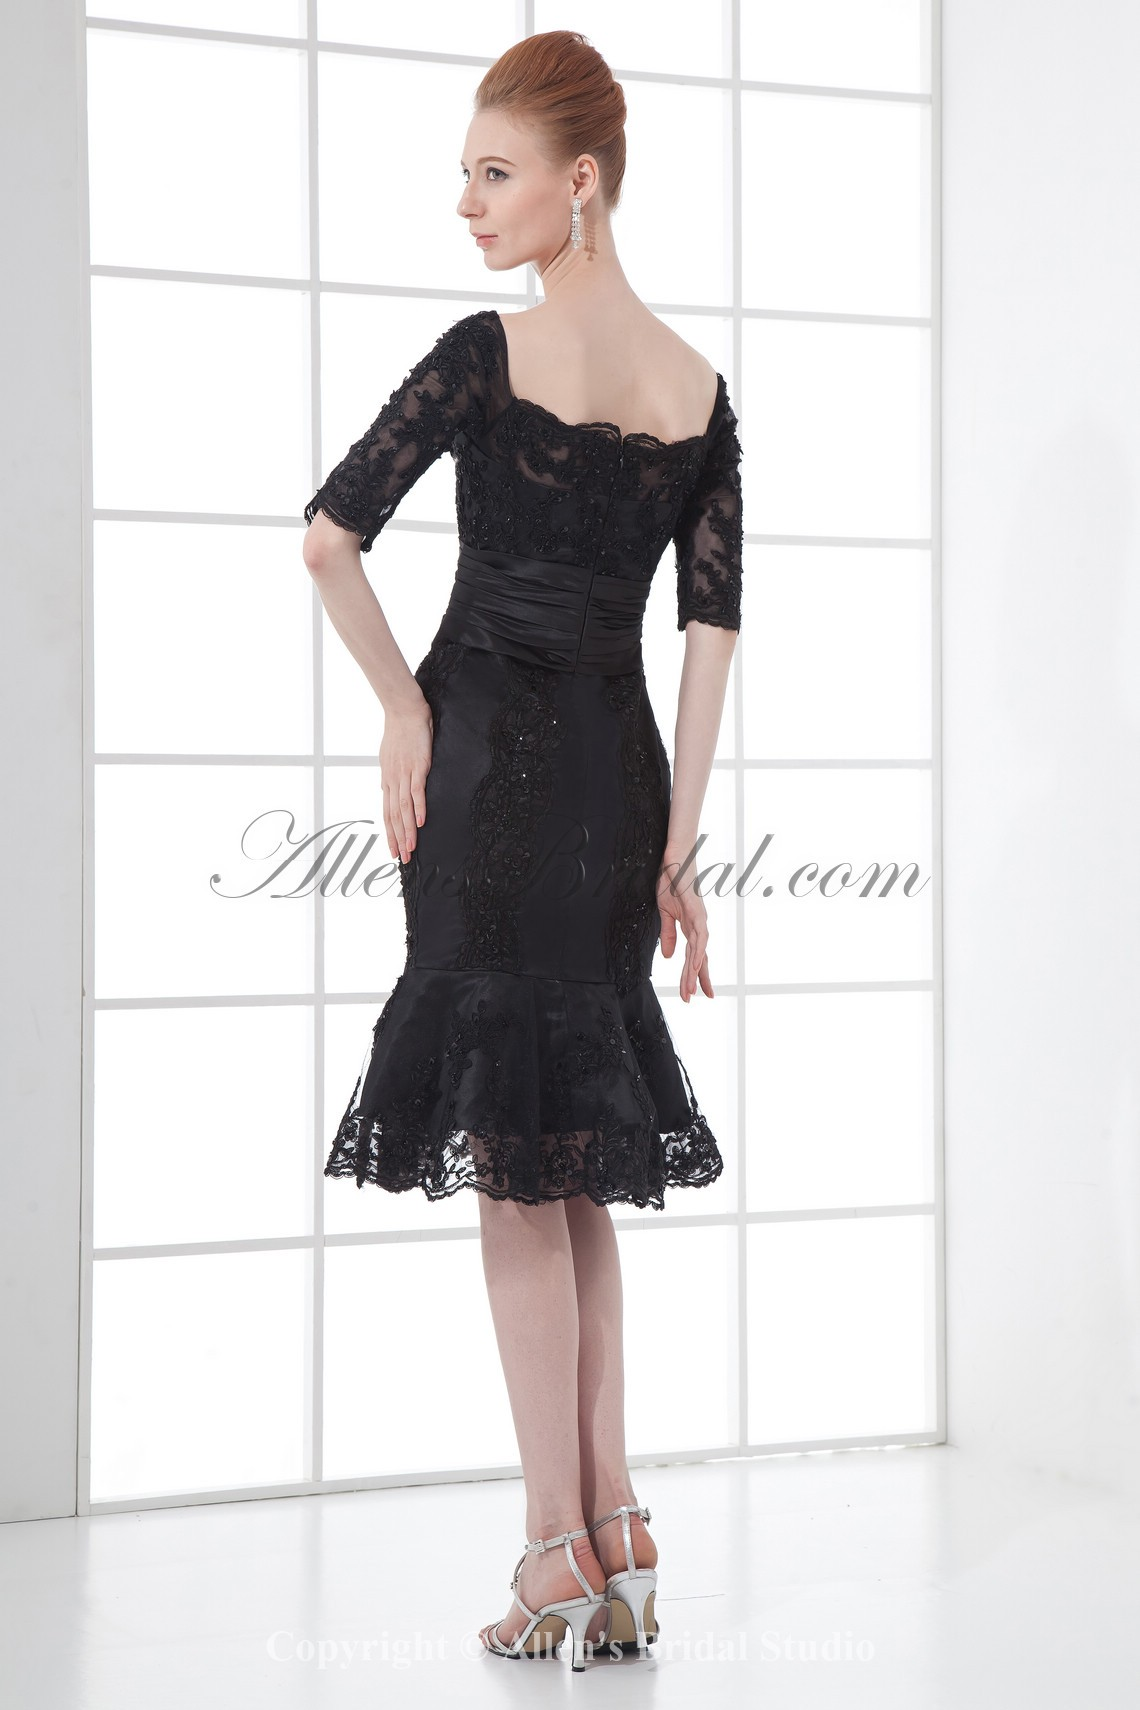 /75-600/lace-off-the-shoulder-neckline-sheath-knee-length-half-sleeves-cocktail-dress.jpg